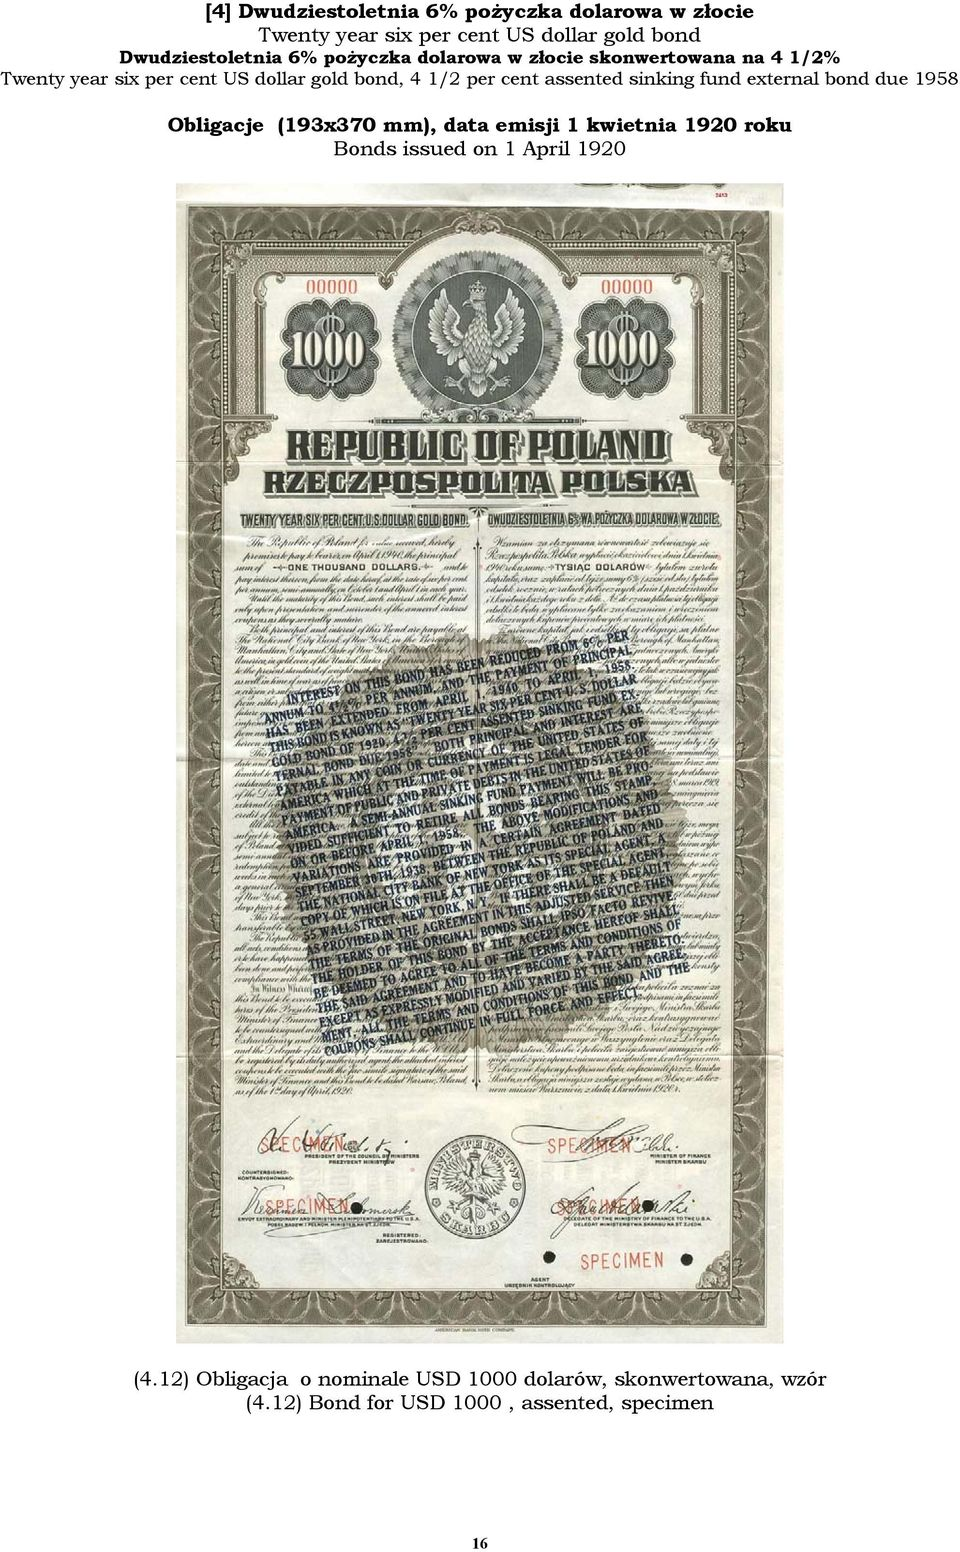 assented sinking fund external bond due 1958 Obligacje (193x370 mm), data emisji 1 kwietnia 1920 roku Bonds issued on